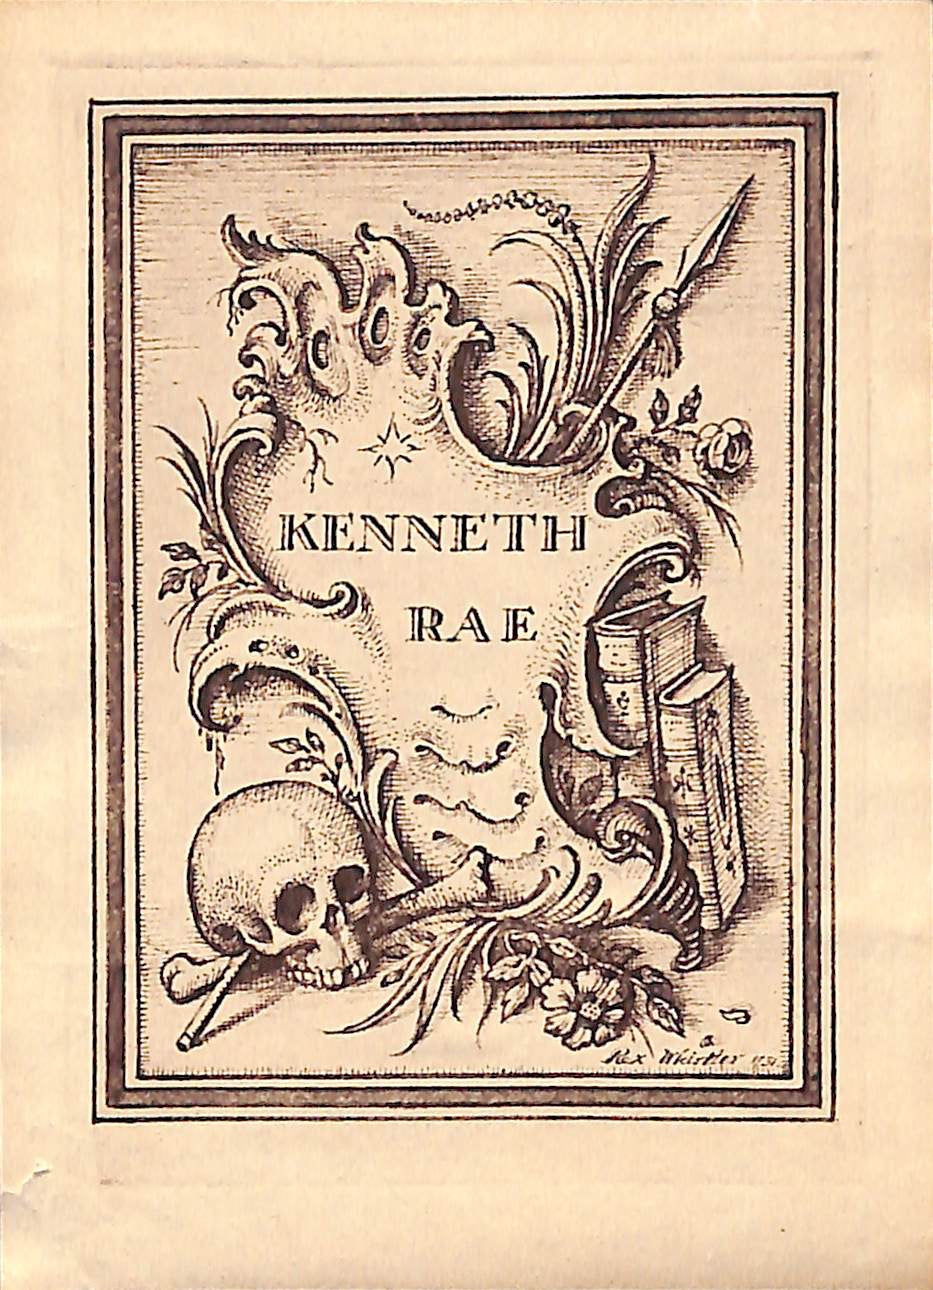 Rex Whistler Designed 1931 Bookplate For Kenneth Rae